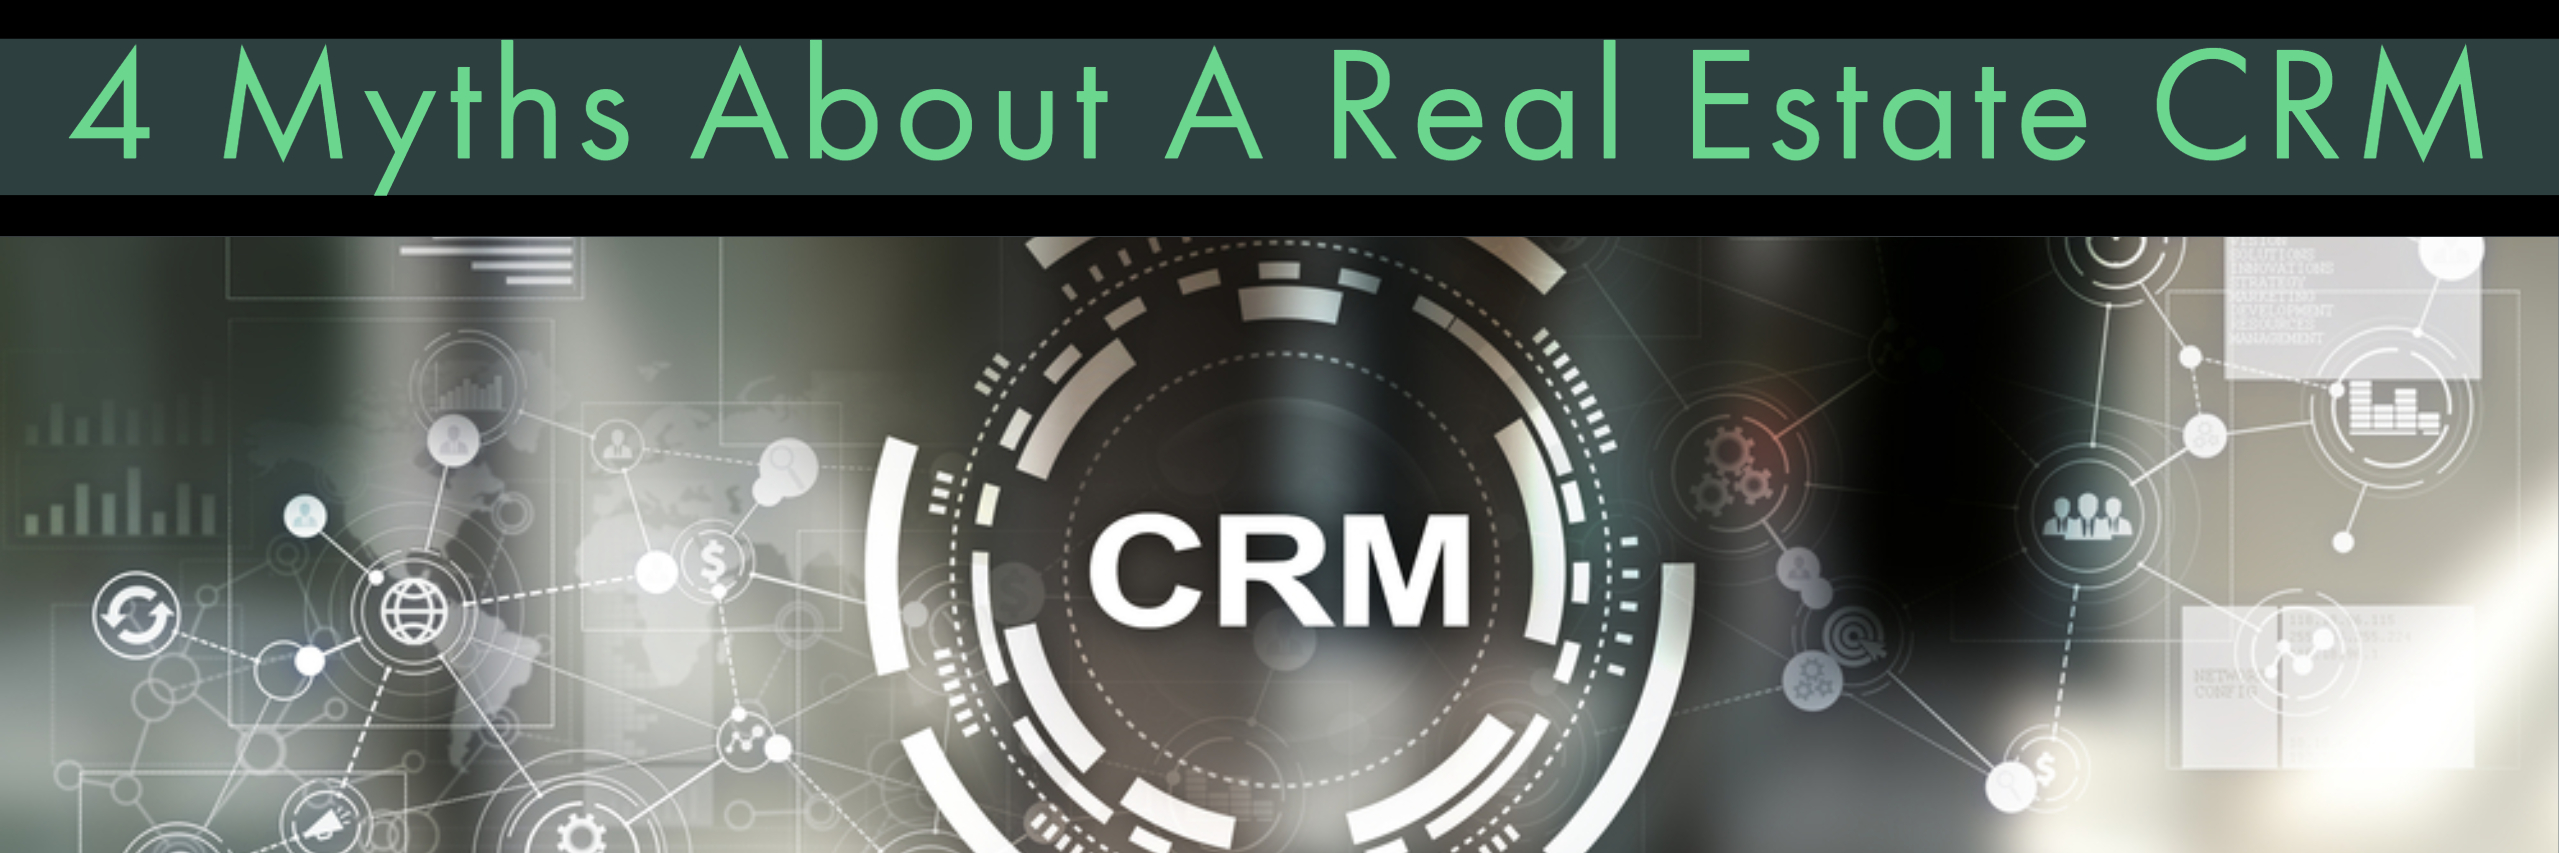 4 Myths About A Real Estate CRM best real estate agent in Los Angeles best real estate agent Paul Argueta